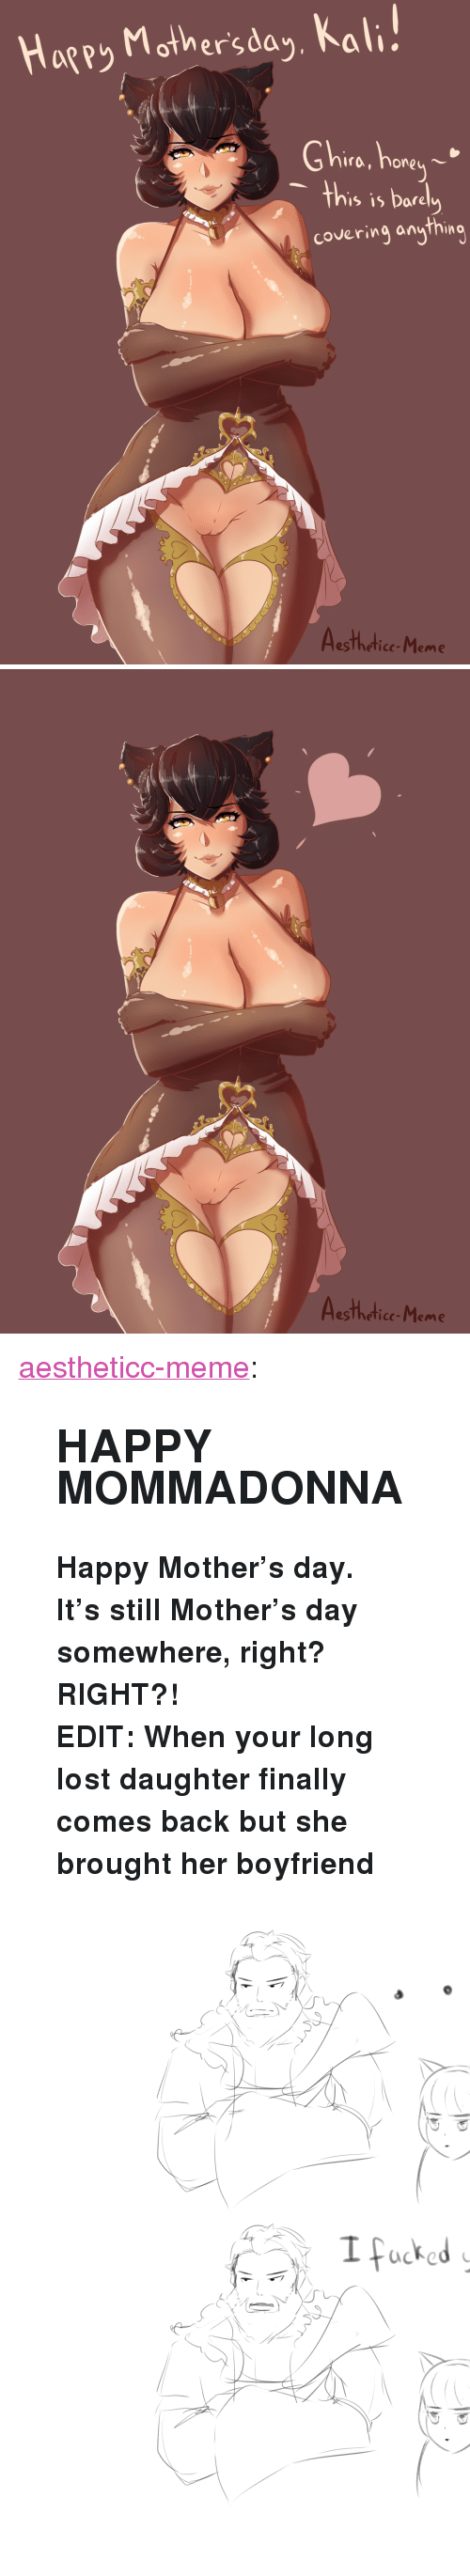 """Meme, Mother's Day, and Target: Hagey Mother'sda,, Kal  Ghire, hore  's is Dare  covering anything  esTheticc-Meme   Aesthedice-Meme <p><a href=""""https://aestheticc-meme.tumblr.com/post/173897633254/happy-mommadonna-happy-mothers-day-its-still"""" class=""""tumblr_blog"""" target=""""_blank"""">aestheticc-meme</a>:</p>  <blockquote><h2><b>HAPPY MOMMADONNA</b></h2><p><b>Happy Mother's day.</b></p><p><b>It's still Mother's day somewhere, right? RIGHT?!</b></p><p><b>EDIT: When your long lost daughter finally comes back but she brought her boyfriend</b></p><figure class=""""tmblr-full"""" data-orig-height=""""2994"""" data-orig-width=""""2480""""><img src=""""https://78.media.tumblr.com/96786384d4e49eb02ee01438d2ad255e/tumblr_inline_p8qdxsGKwz1sdoznj_540.png"""" data-orig-height=""""2994"""" data-orig-width=""""2480""""/></figure></blockquote>"""